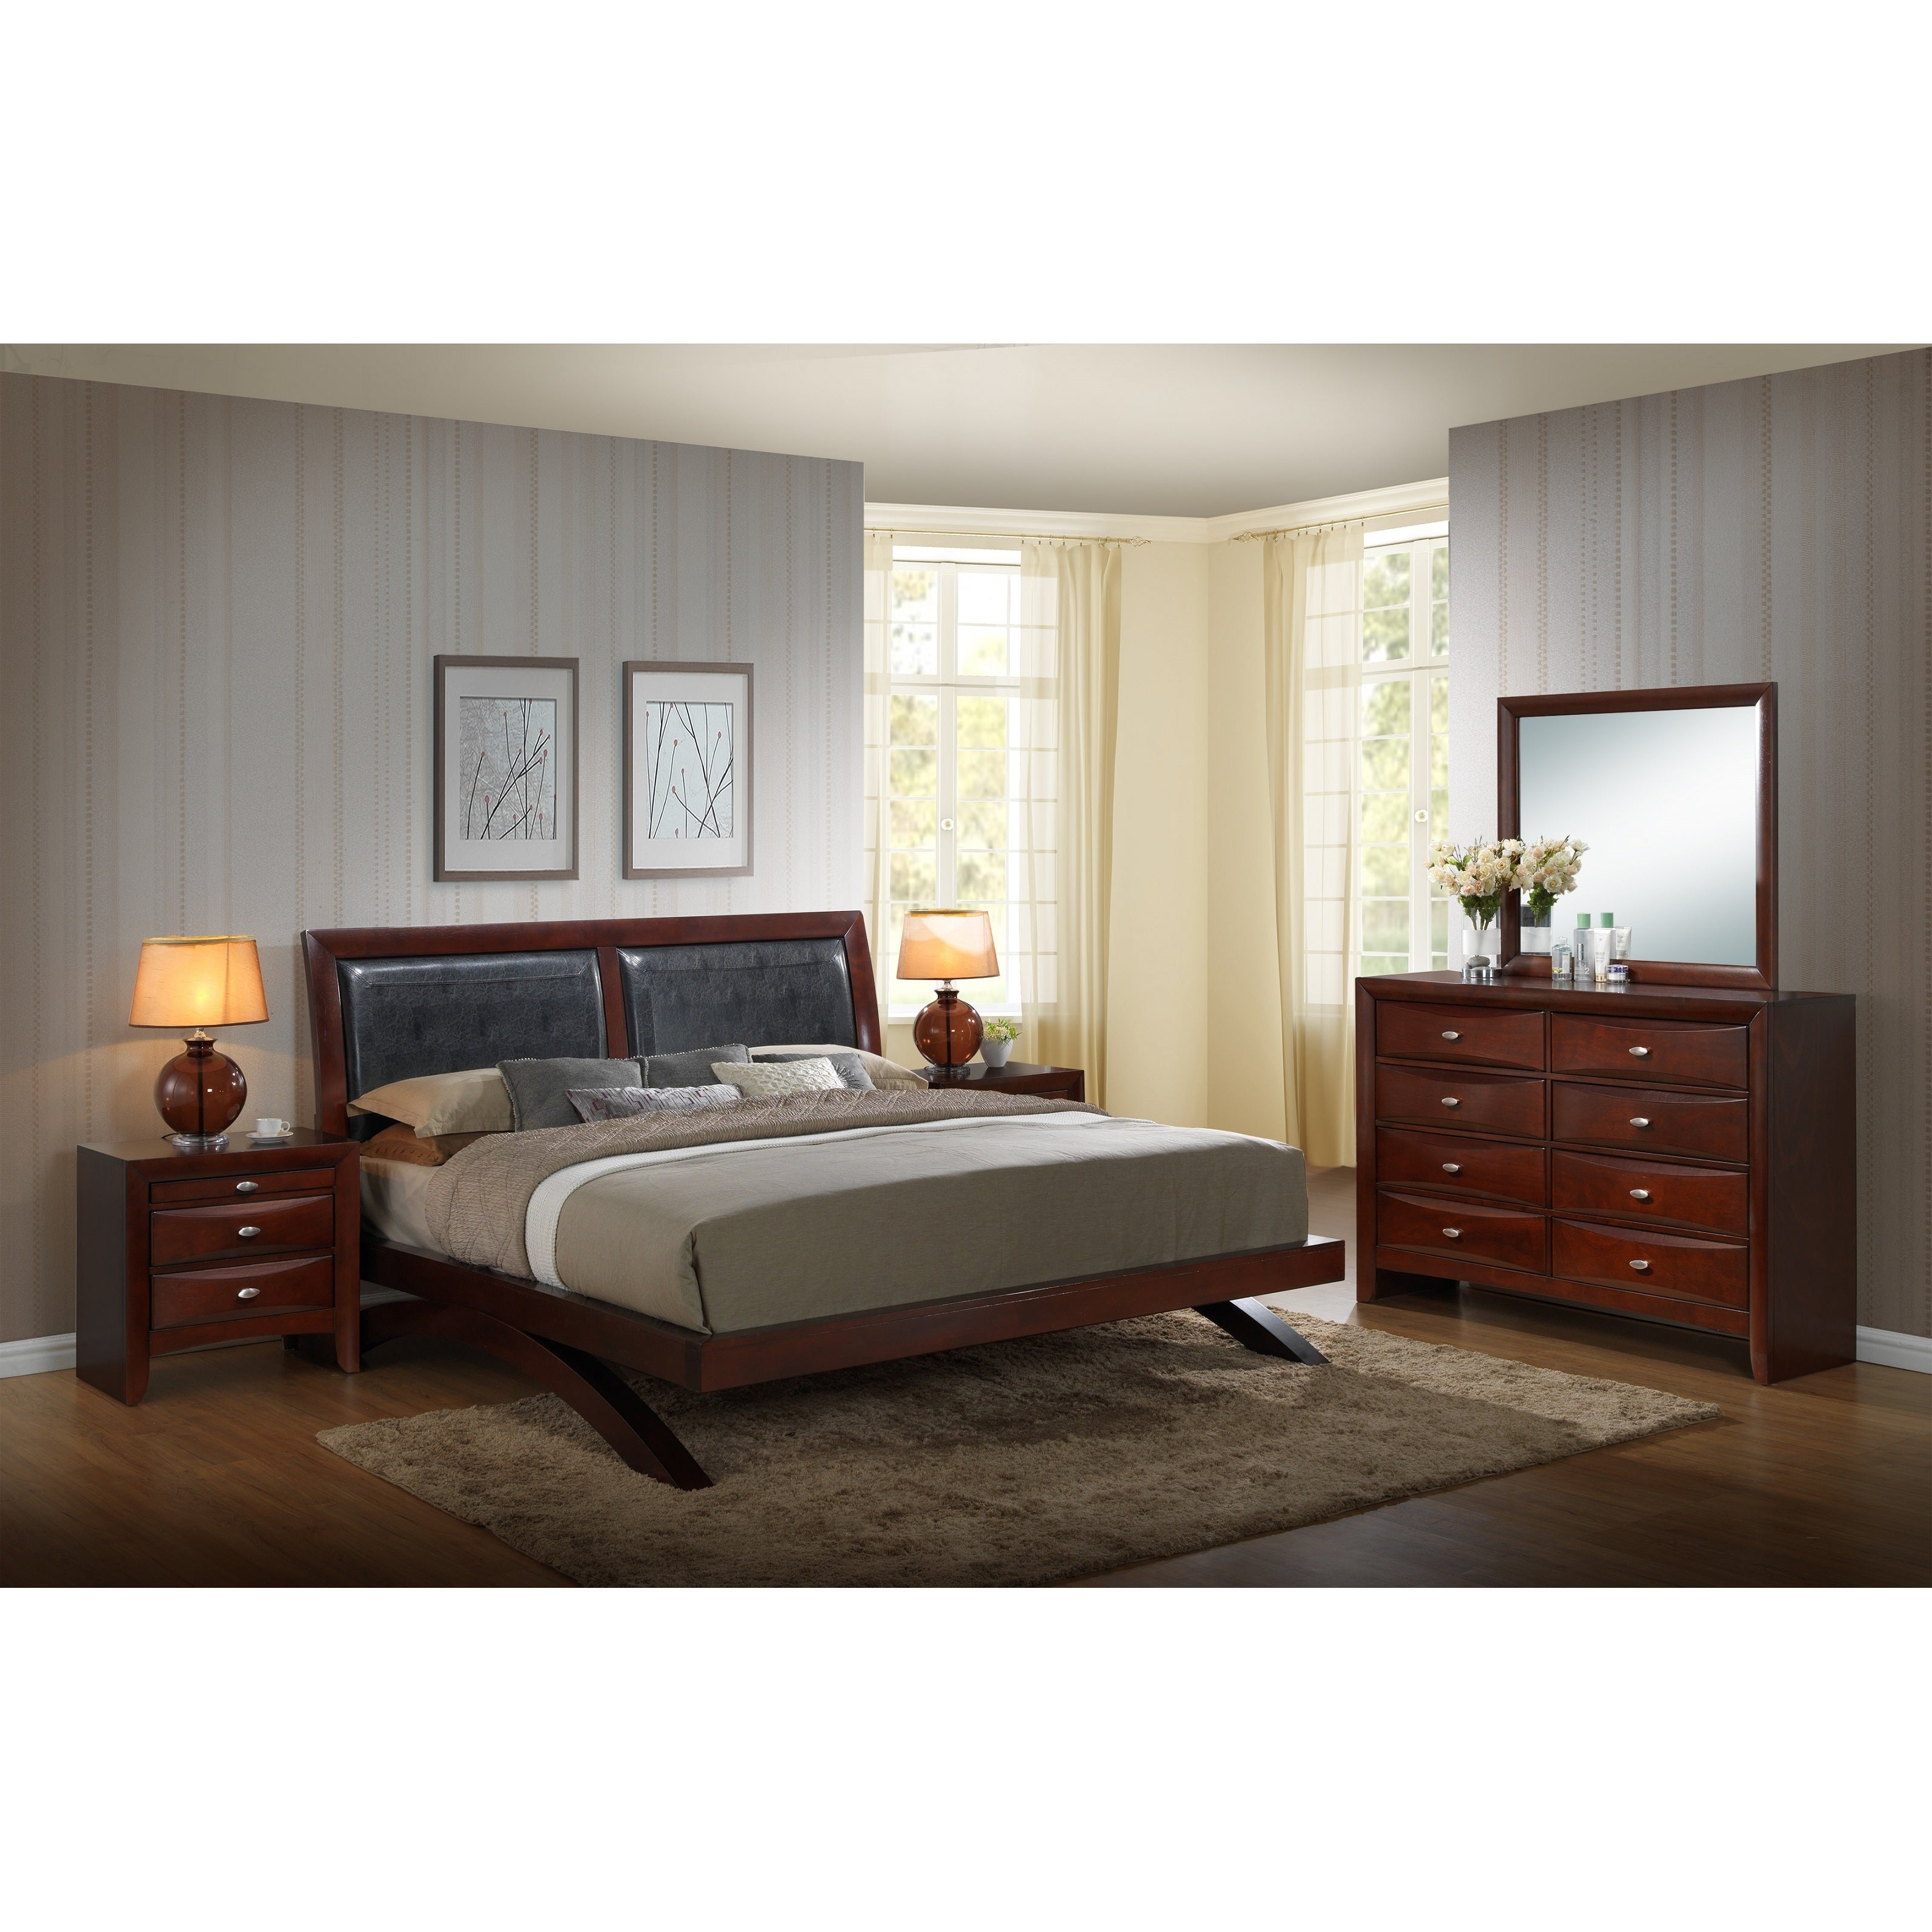 Emily 111 Wood Arch-Leg Bed Group with Queen Bed, Dresser...